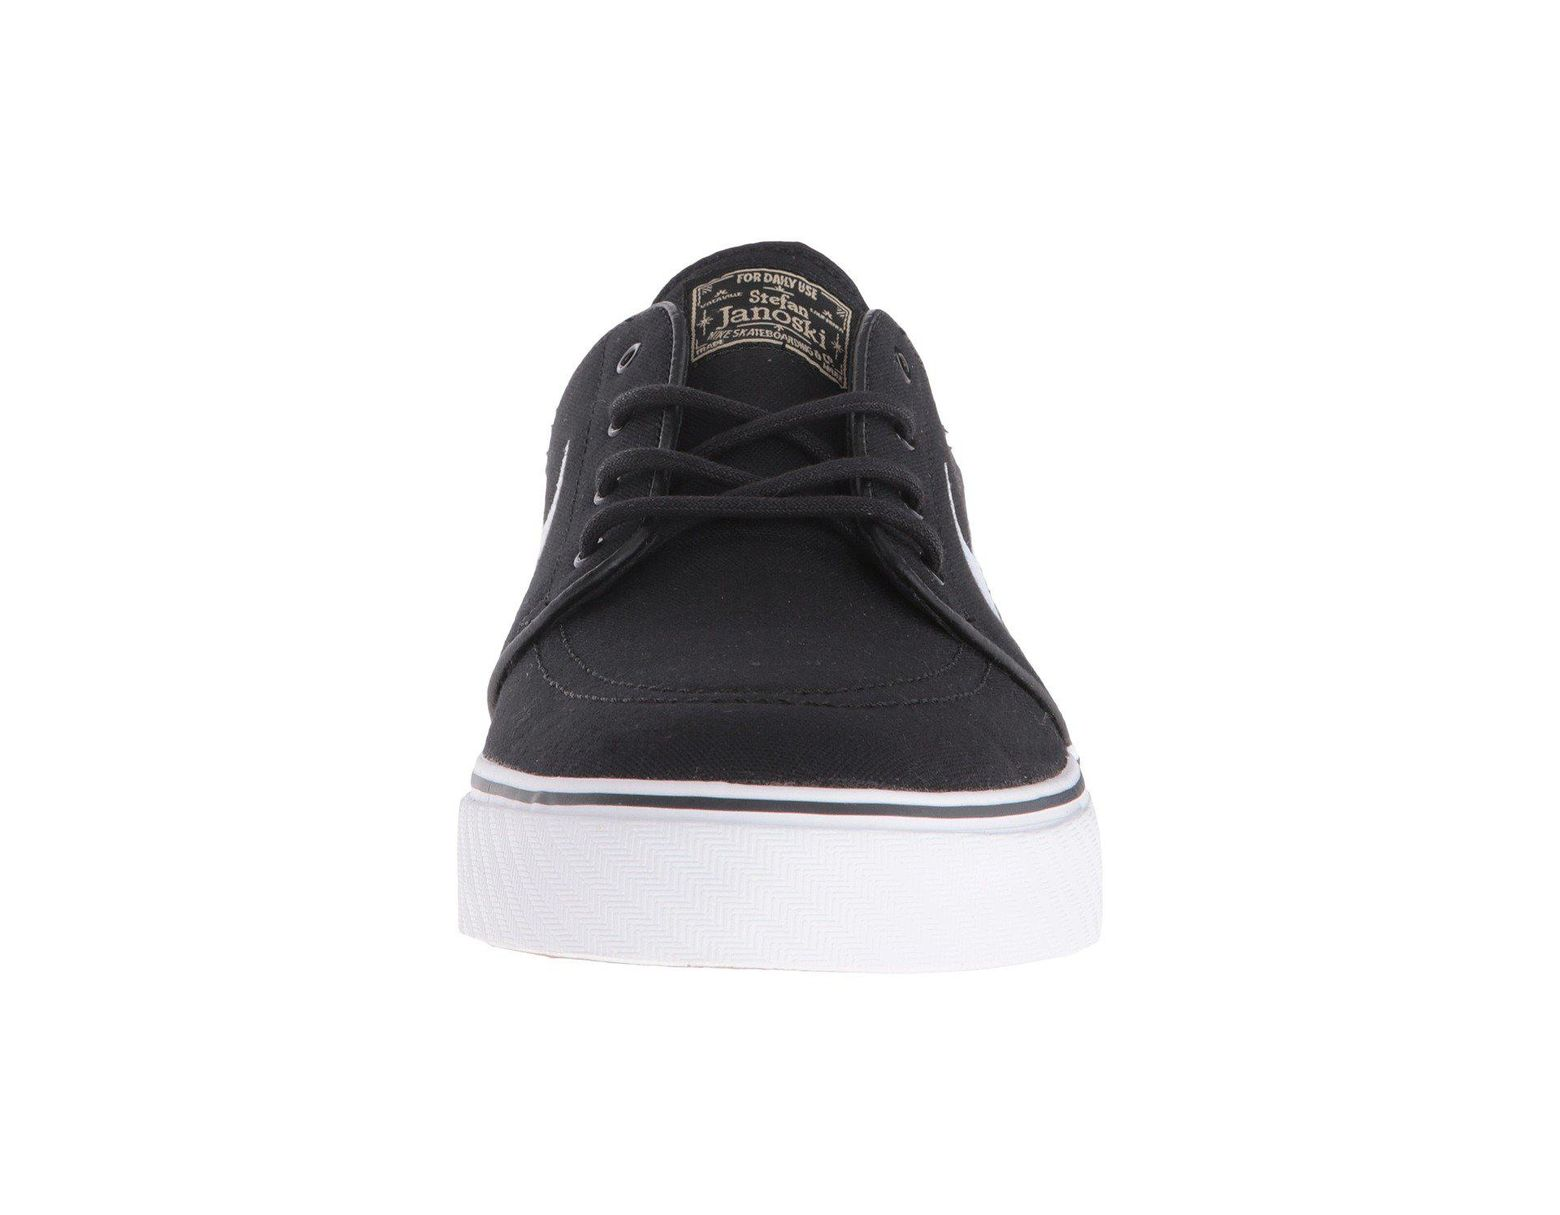 detailed look 773a8 54e77 Nike Zoom Stefan Janoski Canvas (dark Grey/gum Light Brown/metallic Gold  Star/white) Men's Skate Shoes in Brown for Men - Lyst